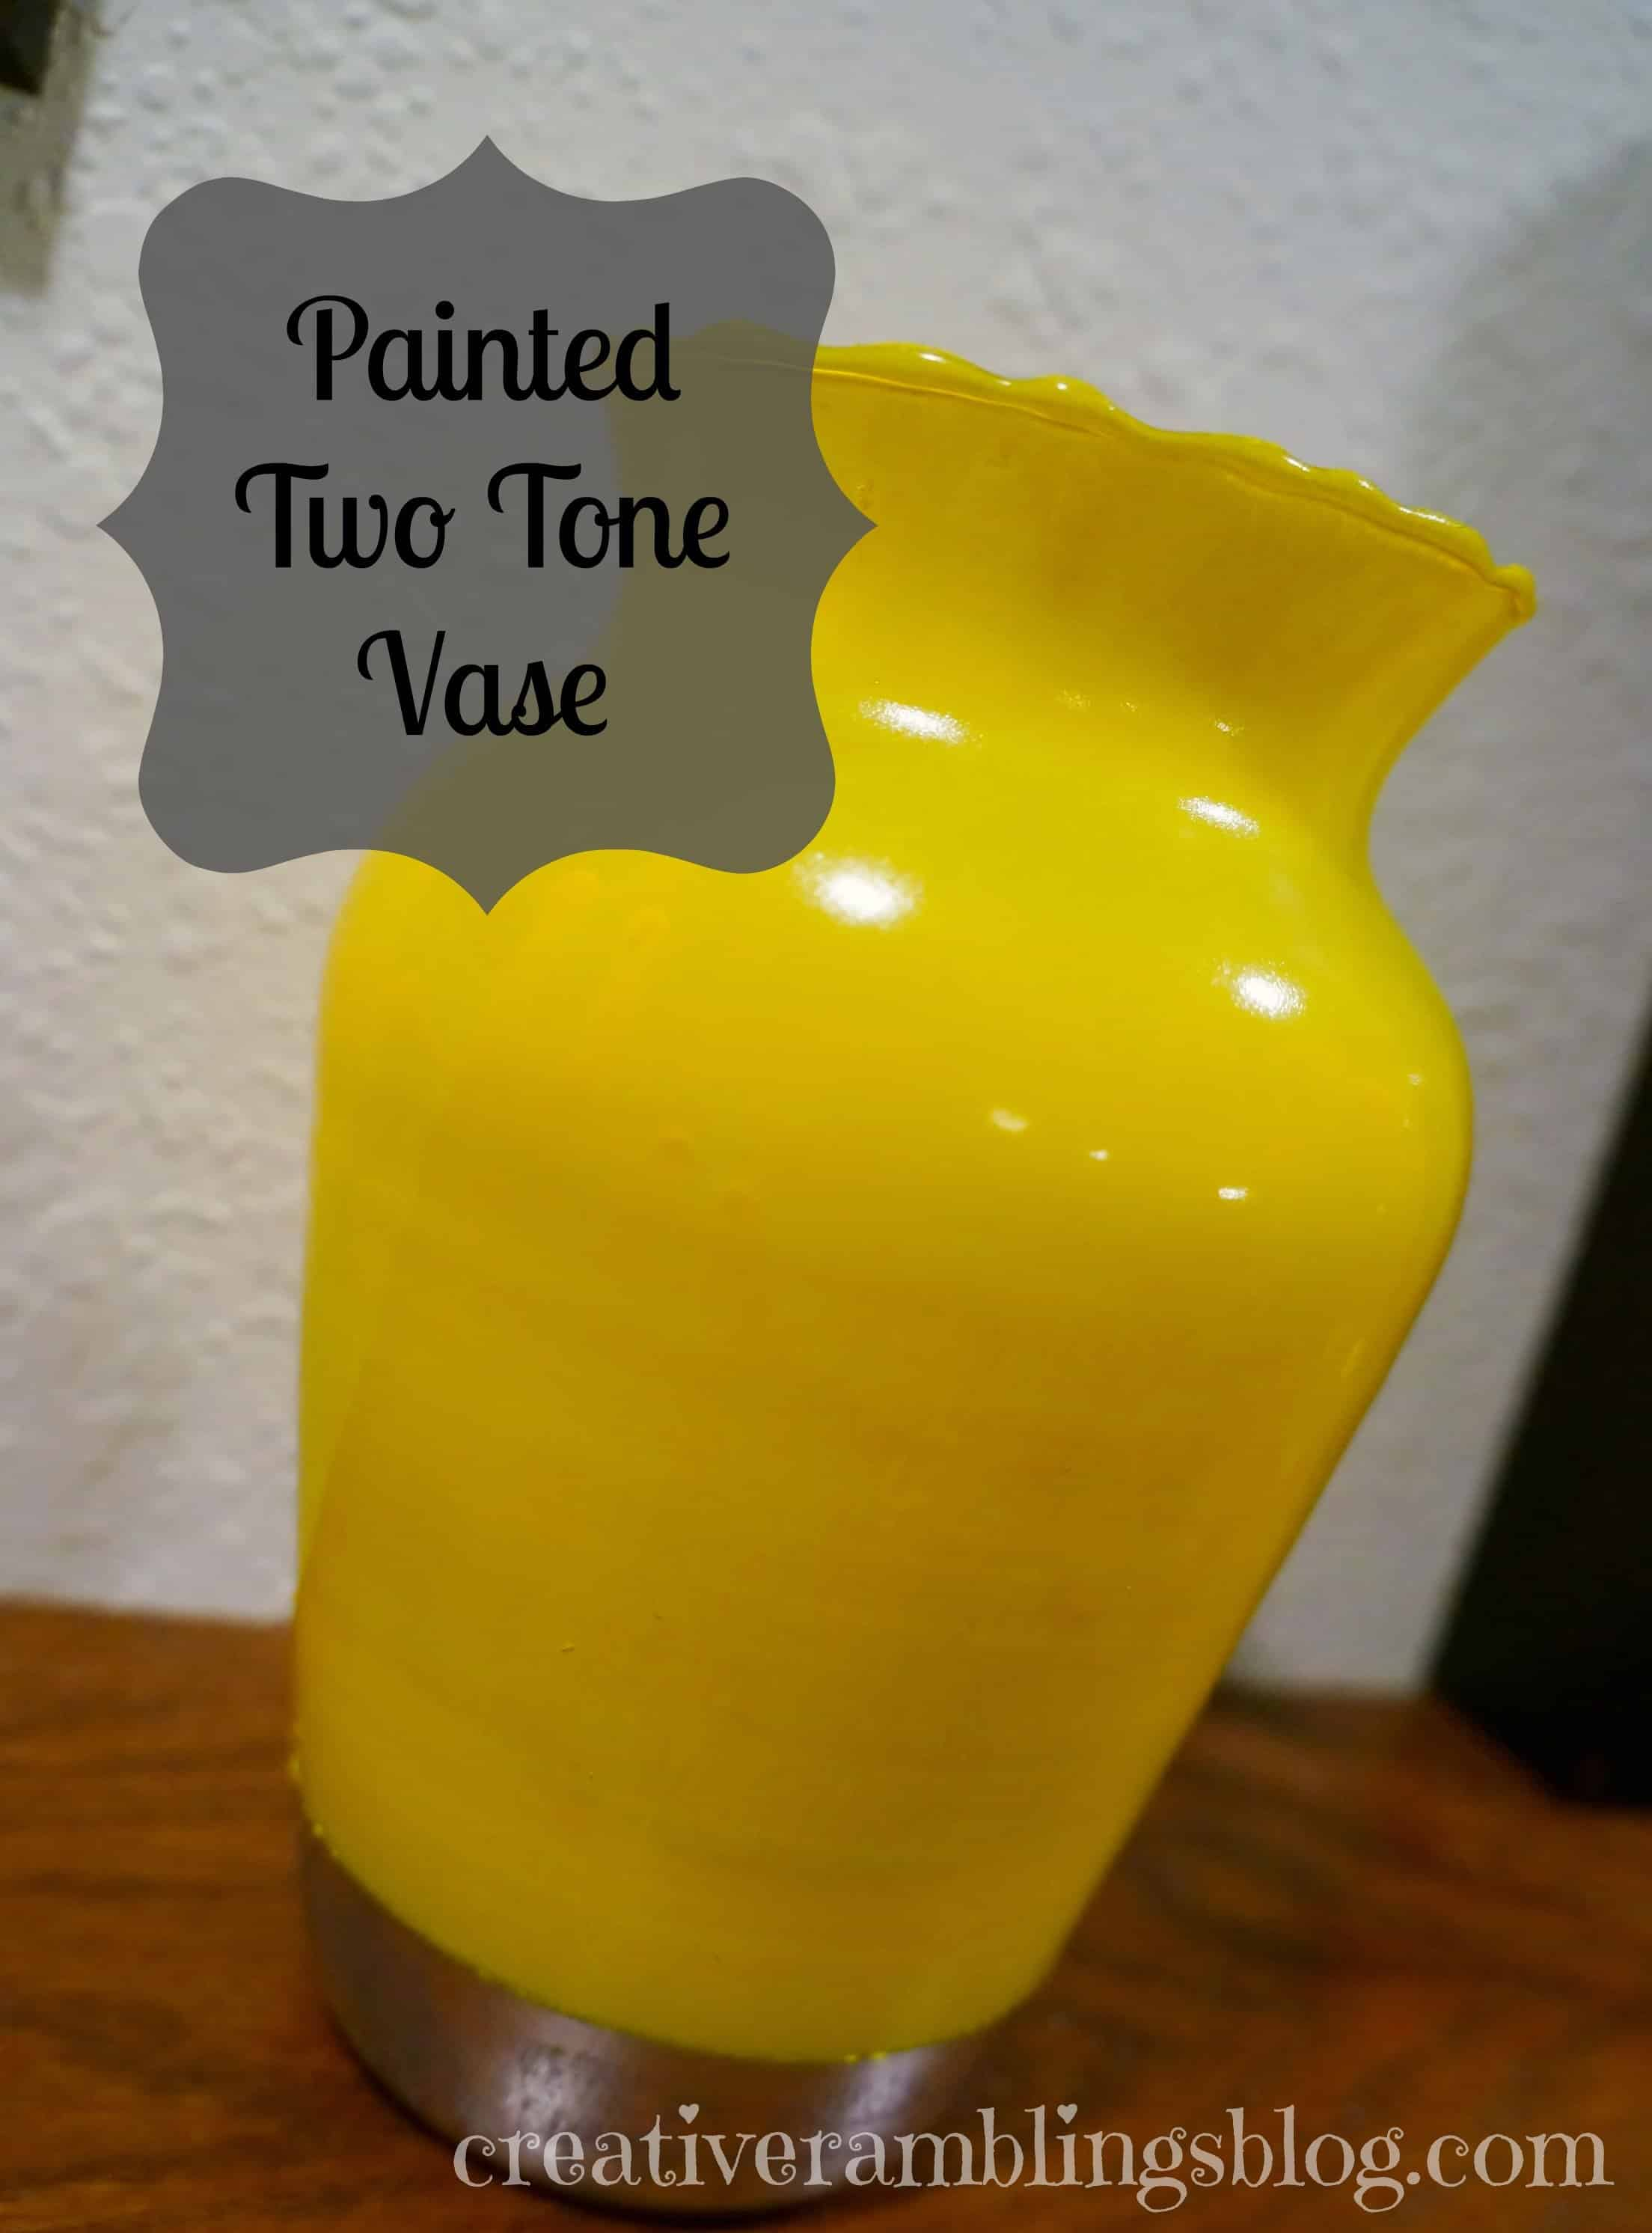 Painted 2 tone vase - yellow and gray